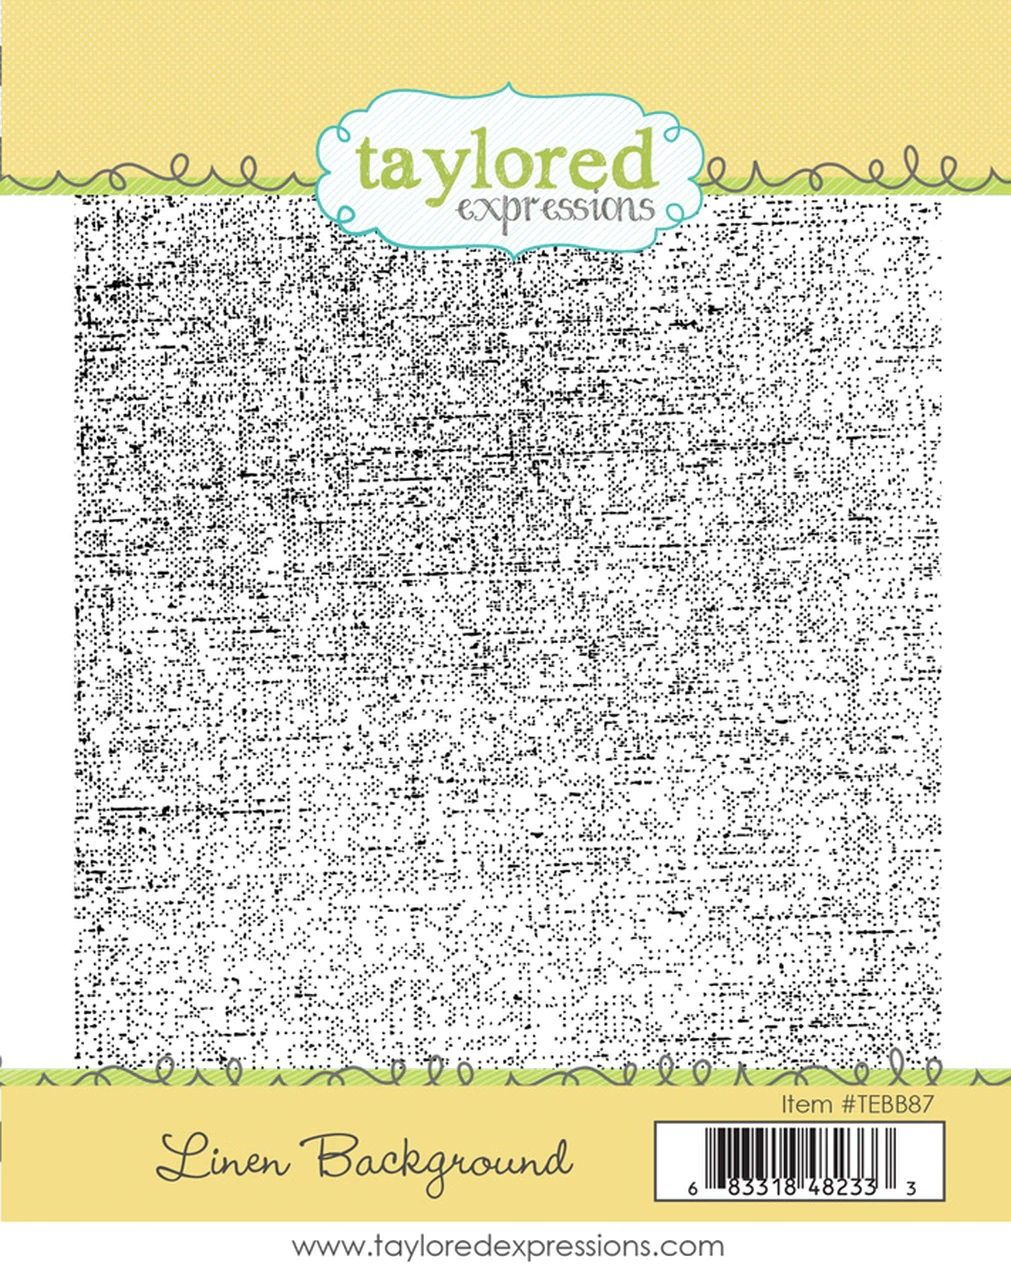 **NEW* - Taylored Expression - LINEN BACKGROUND